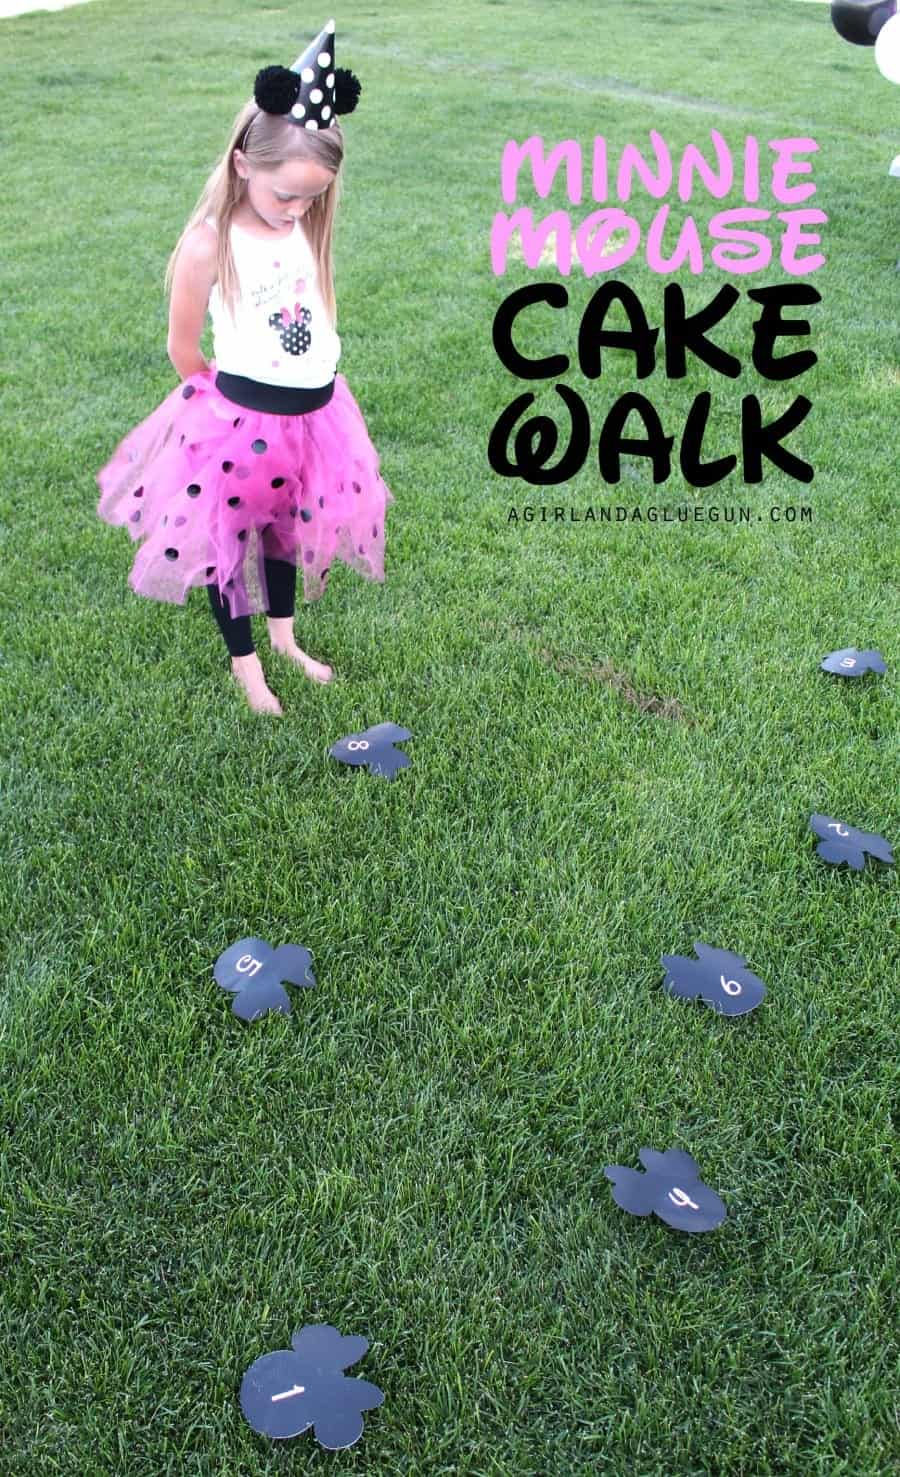 minnie mouse disney cake walk game